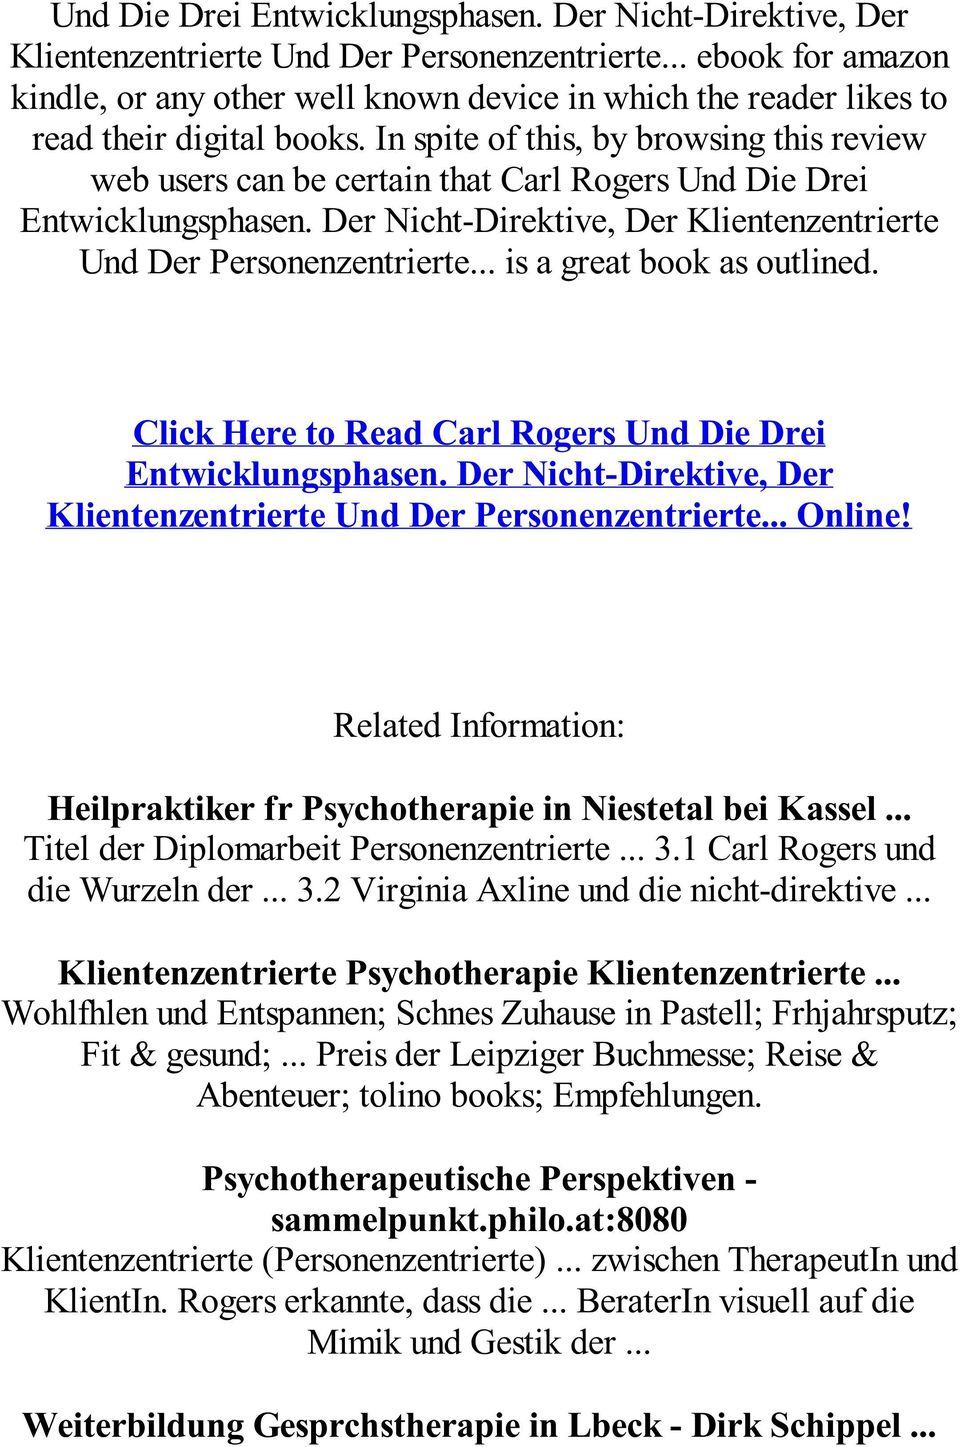 . is a great book as outlined. Click Here to Read Carl Rogers .. Online! Related Information: Heilpraktiker fr Psychotherapie in Niestetal bei Kassel... Titel der Diplomarbeit Personenzentrierte... 3.